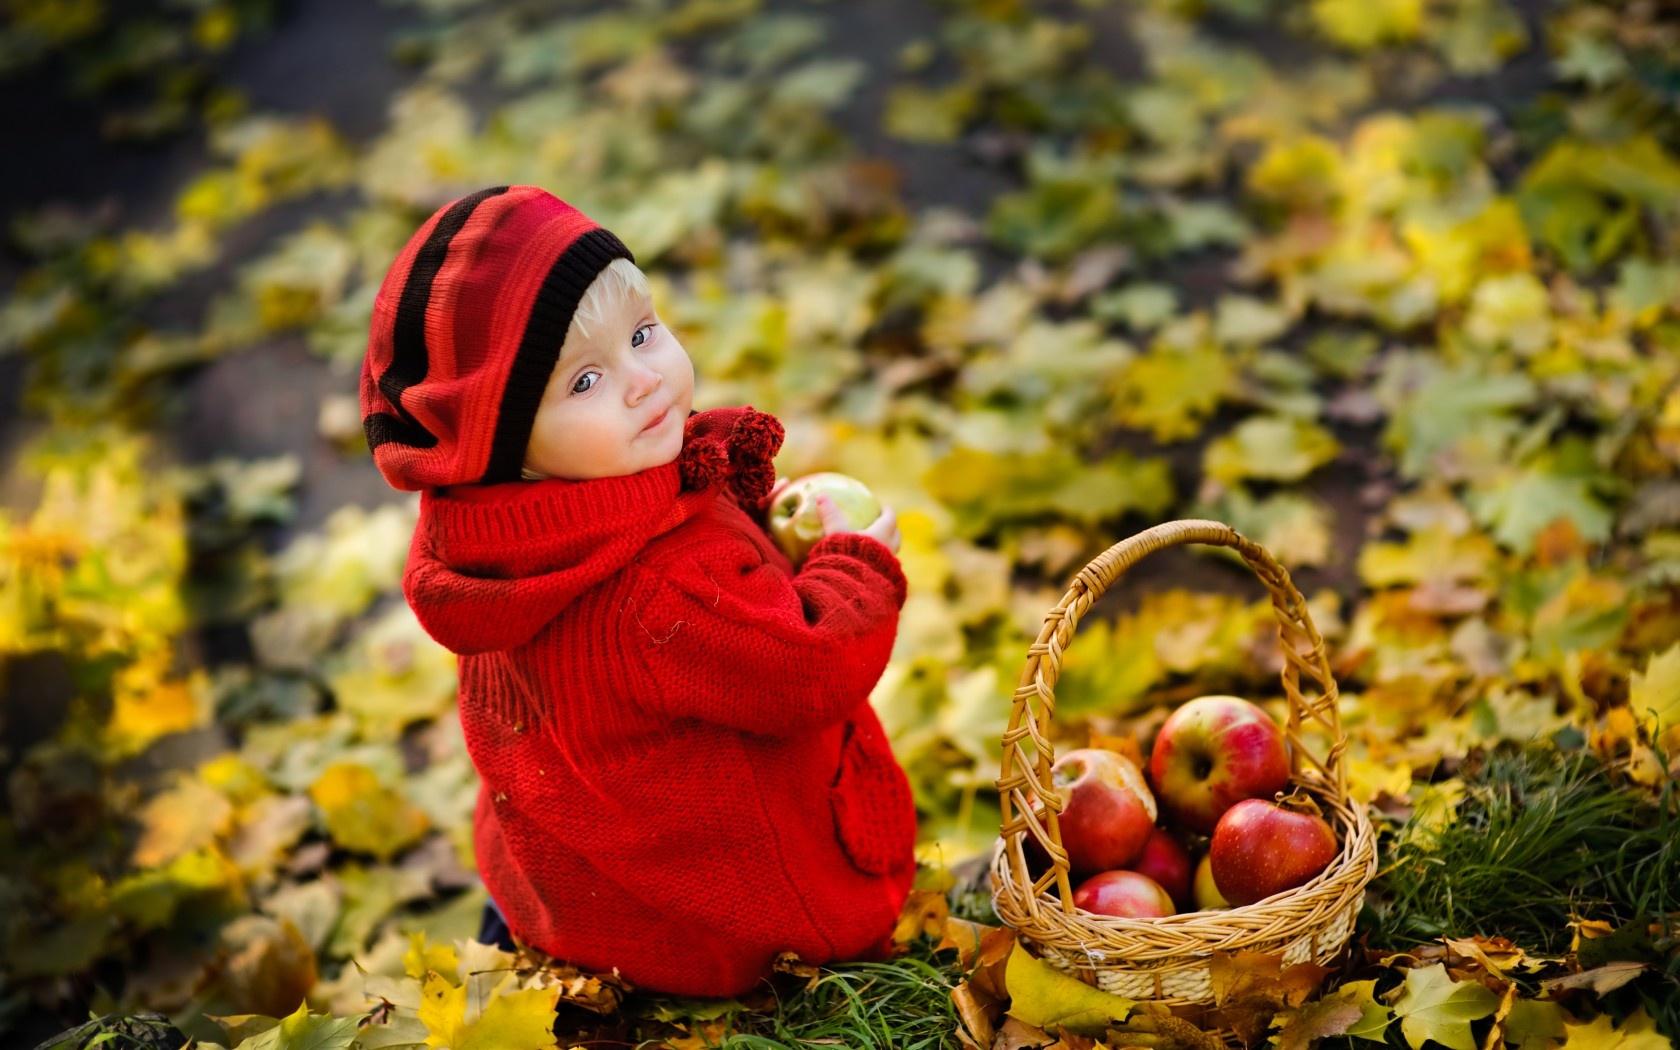 fbf6ac9671850 Little Girl In Red Sweater Wallpapers - 1680x1050 - 449849